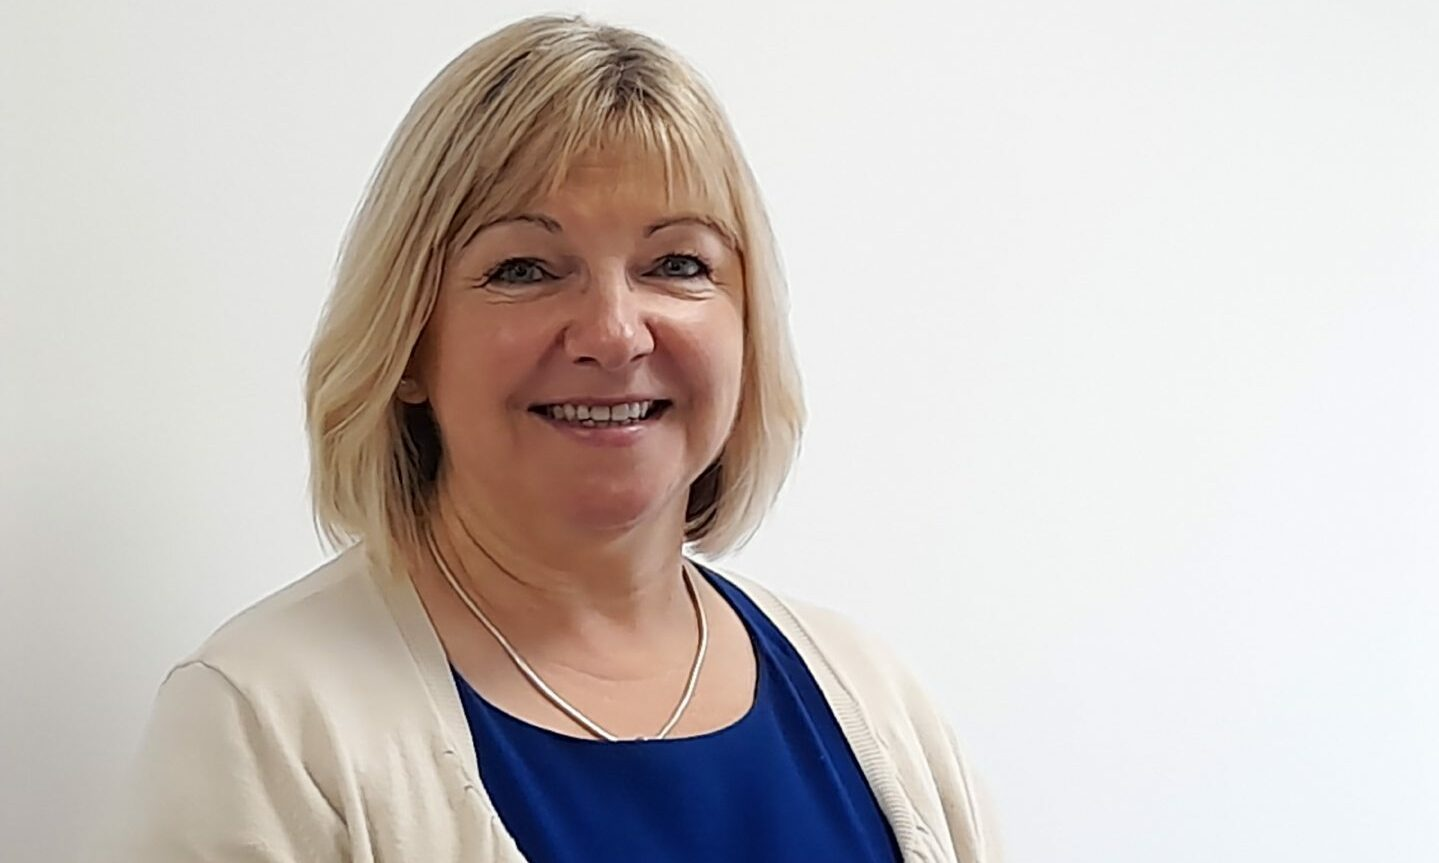 NHS Highland chief executive Pam Dudek has written apologies to staff who were bullied while working for the health board.